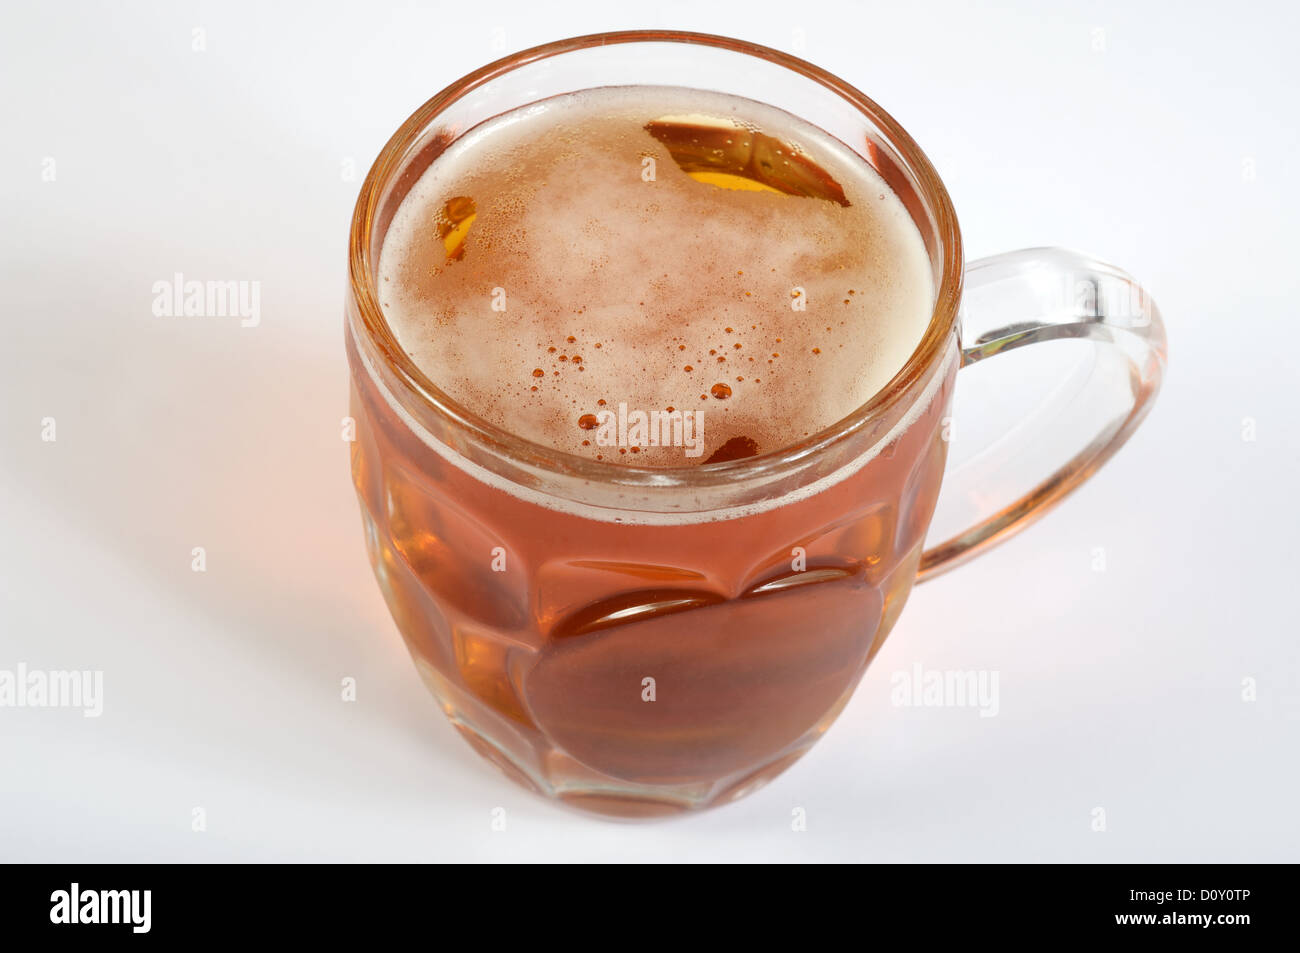 Pint of beer - Stock Image